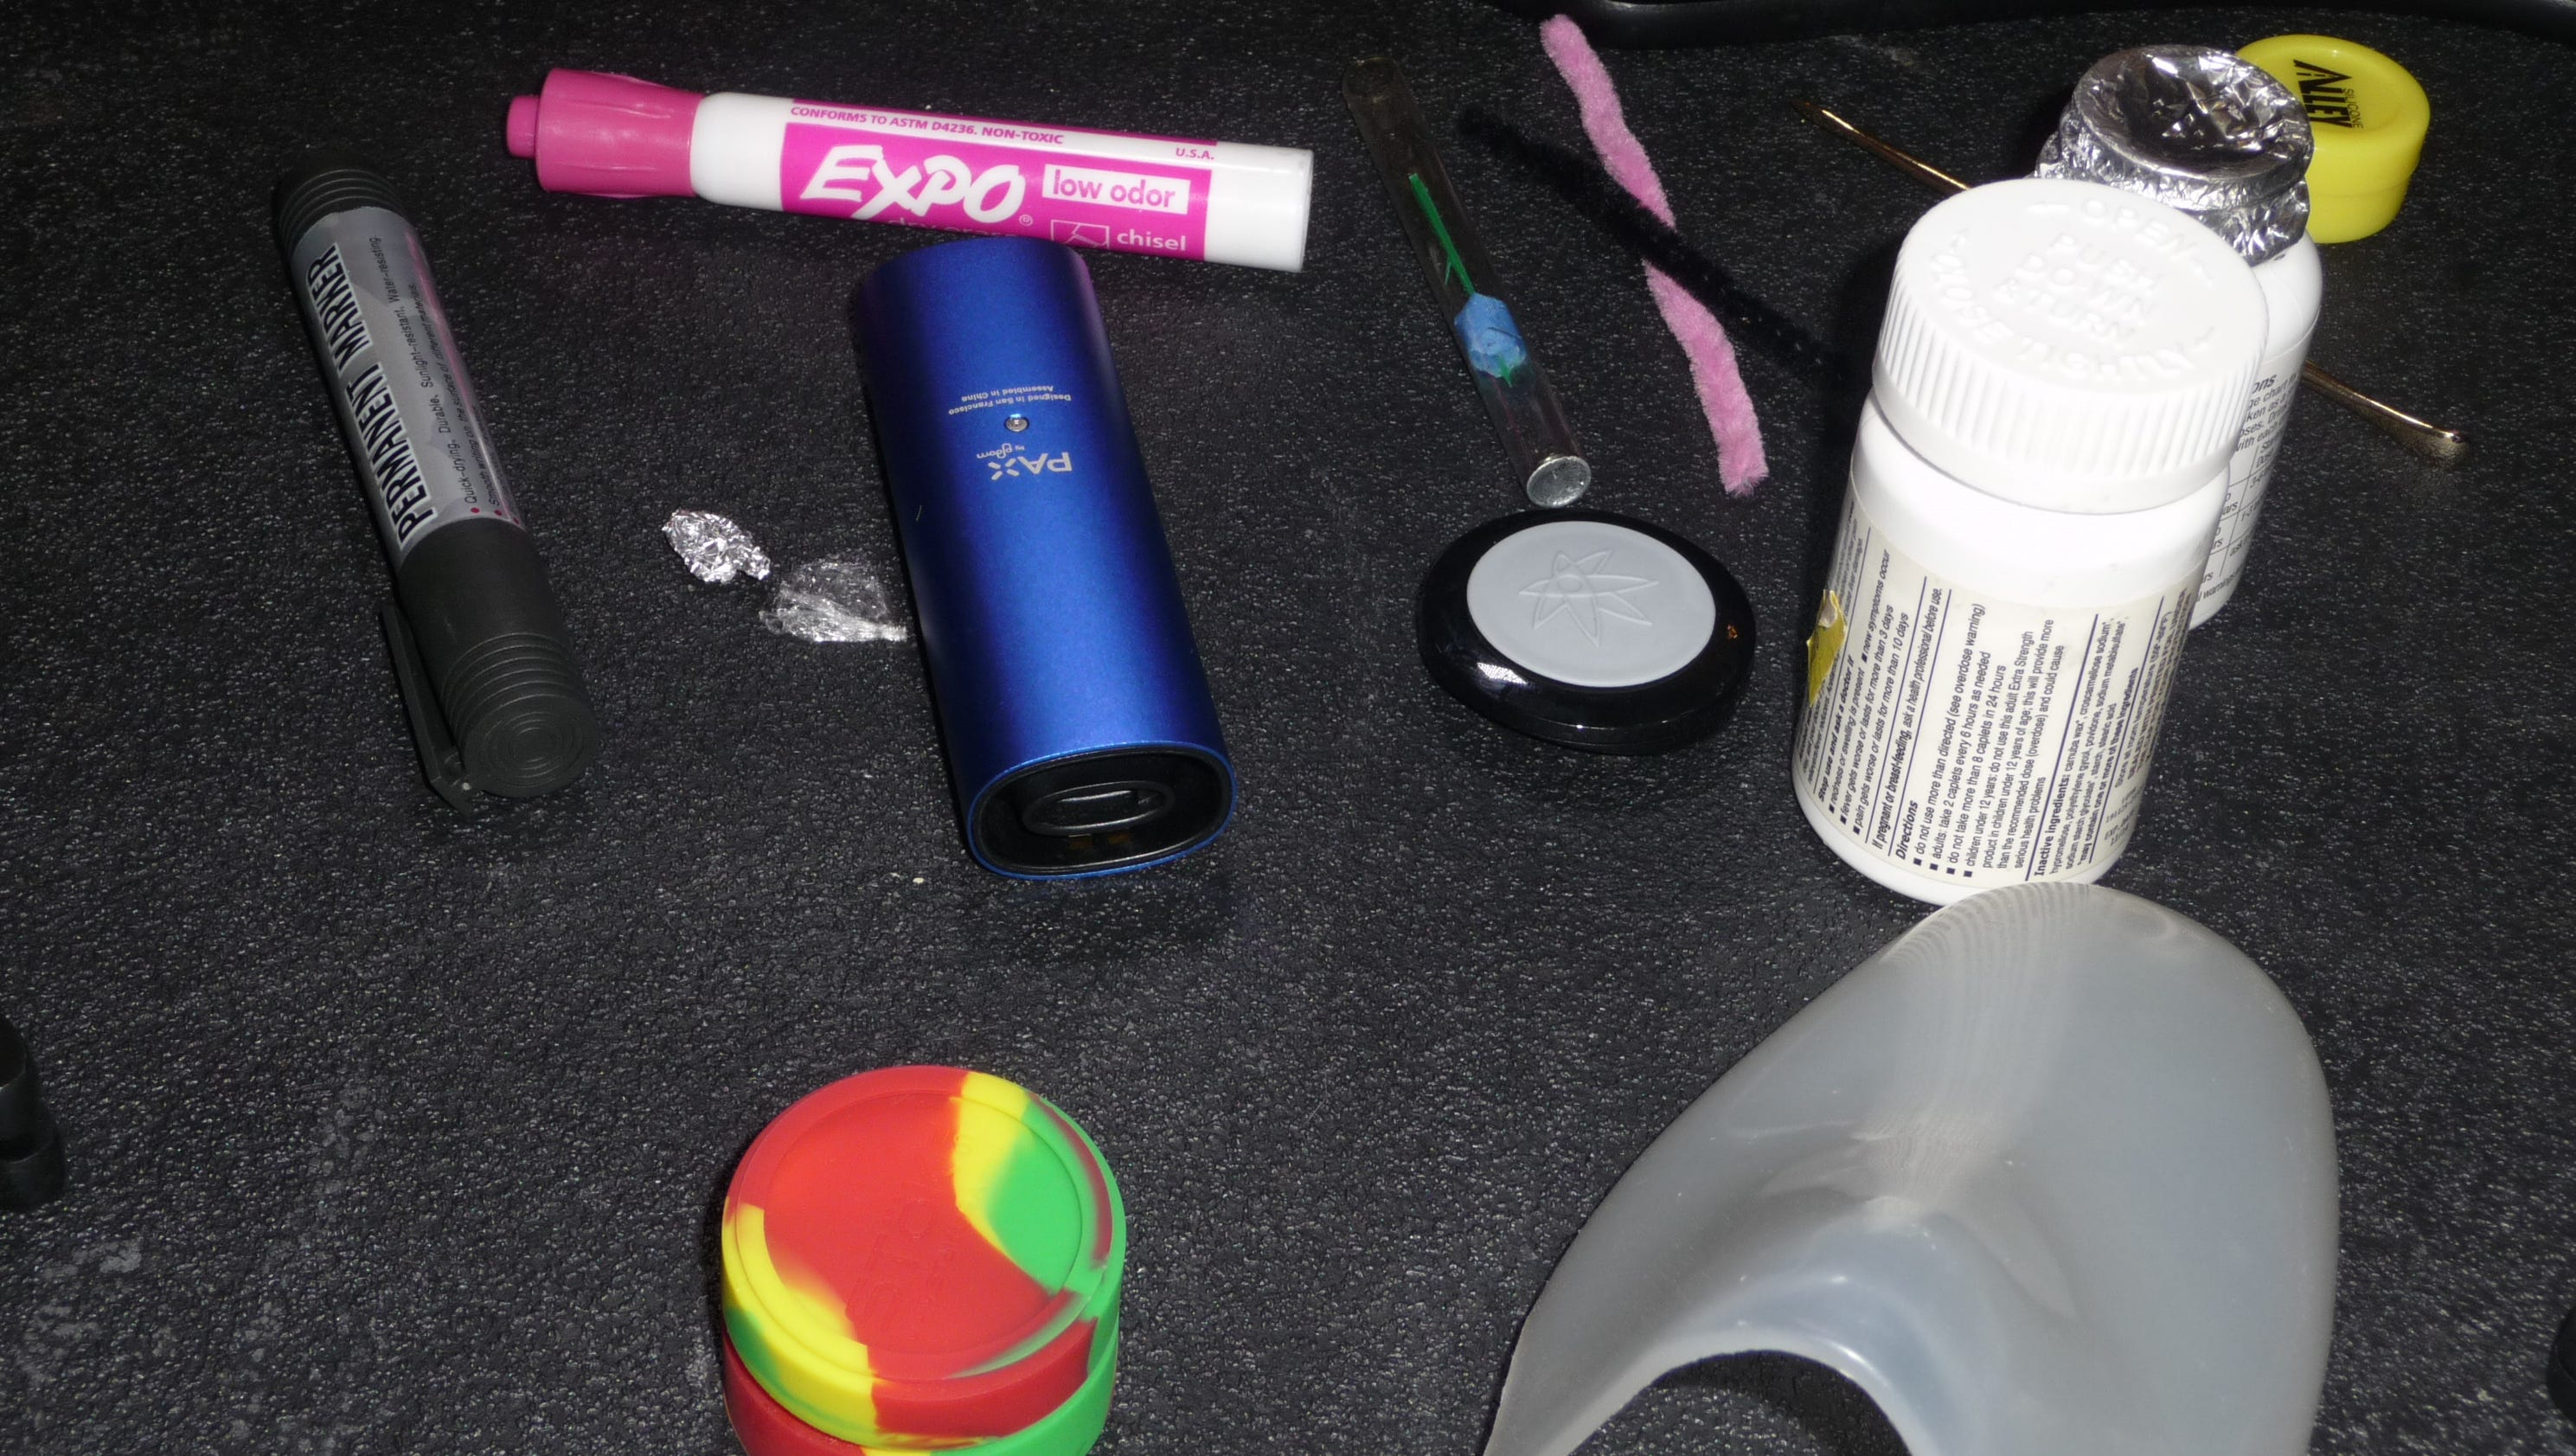 Teens hide drugs in plain sight, Hawthorne parents told